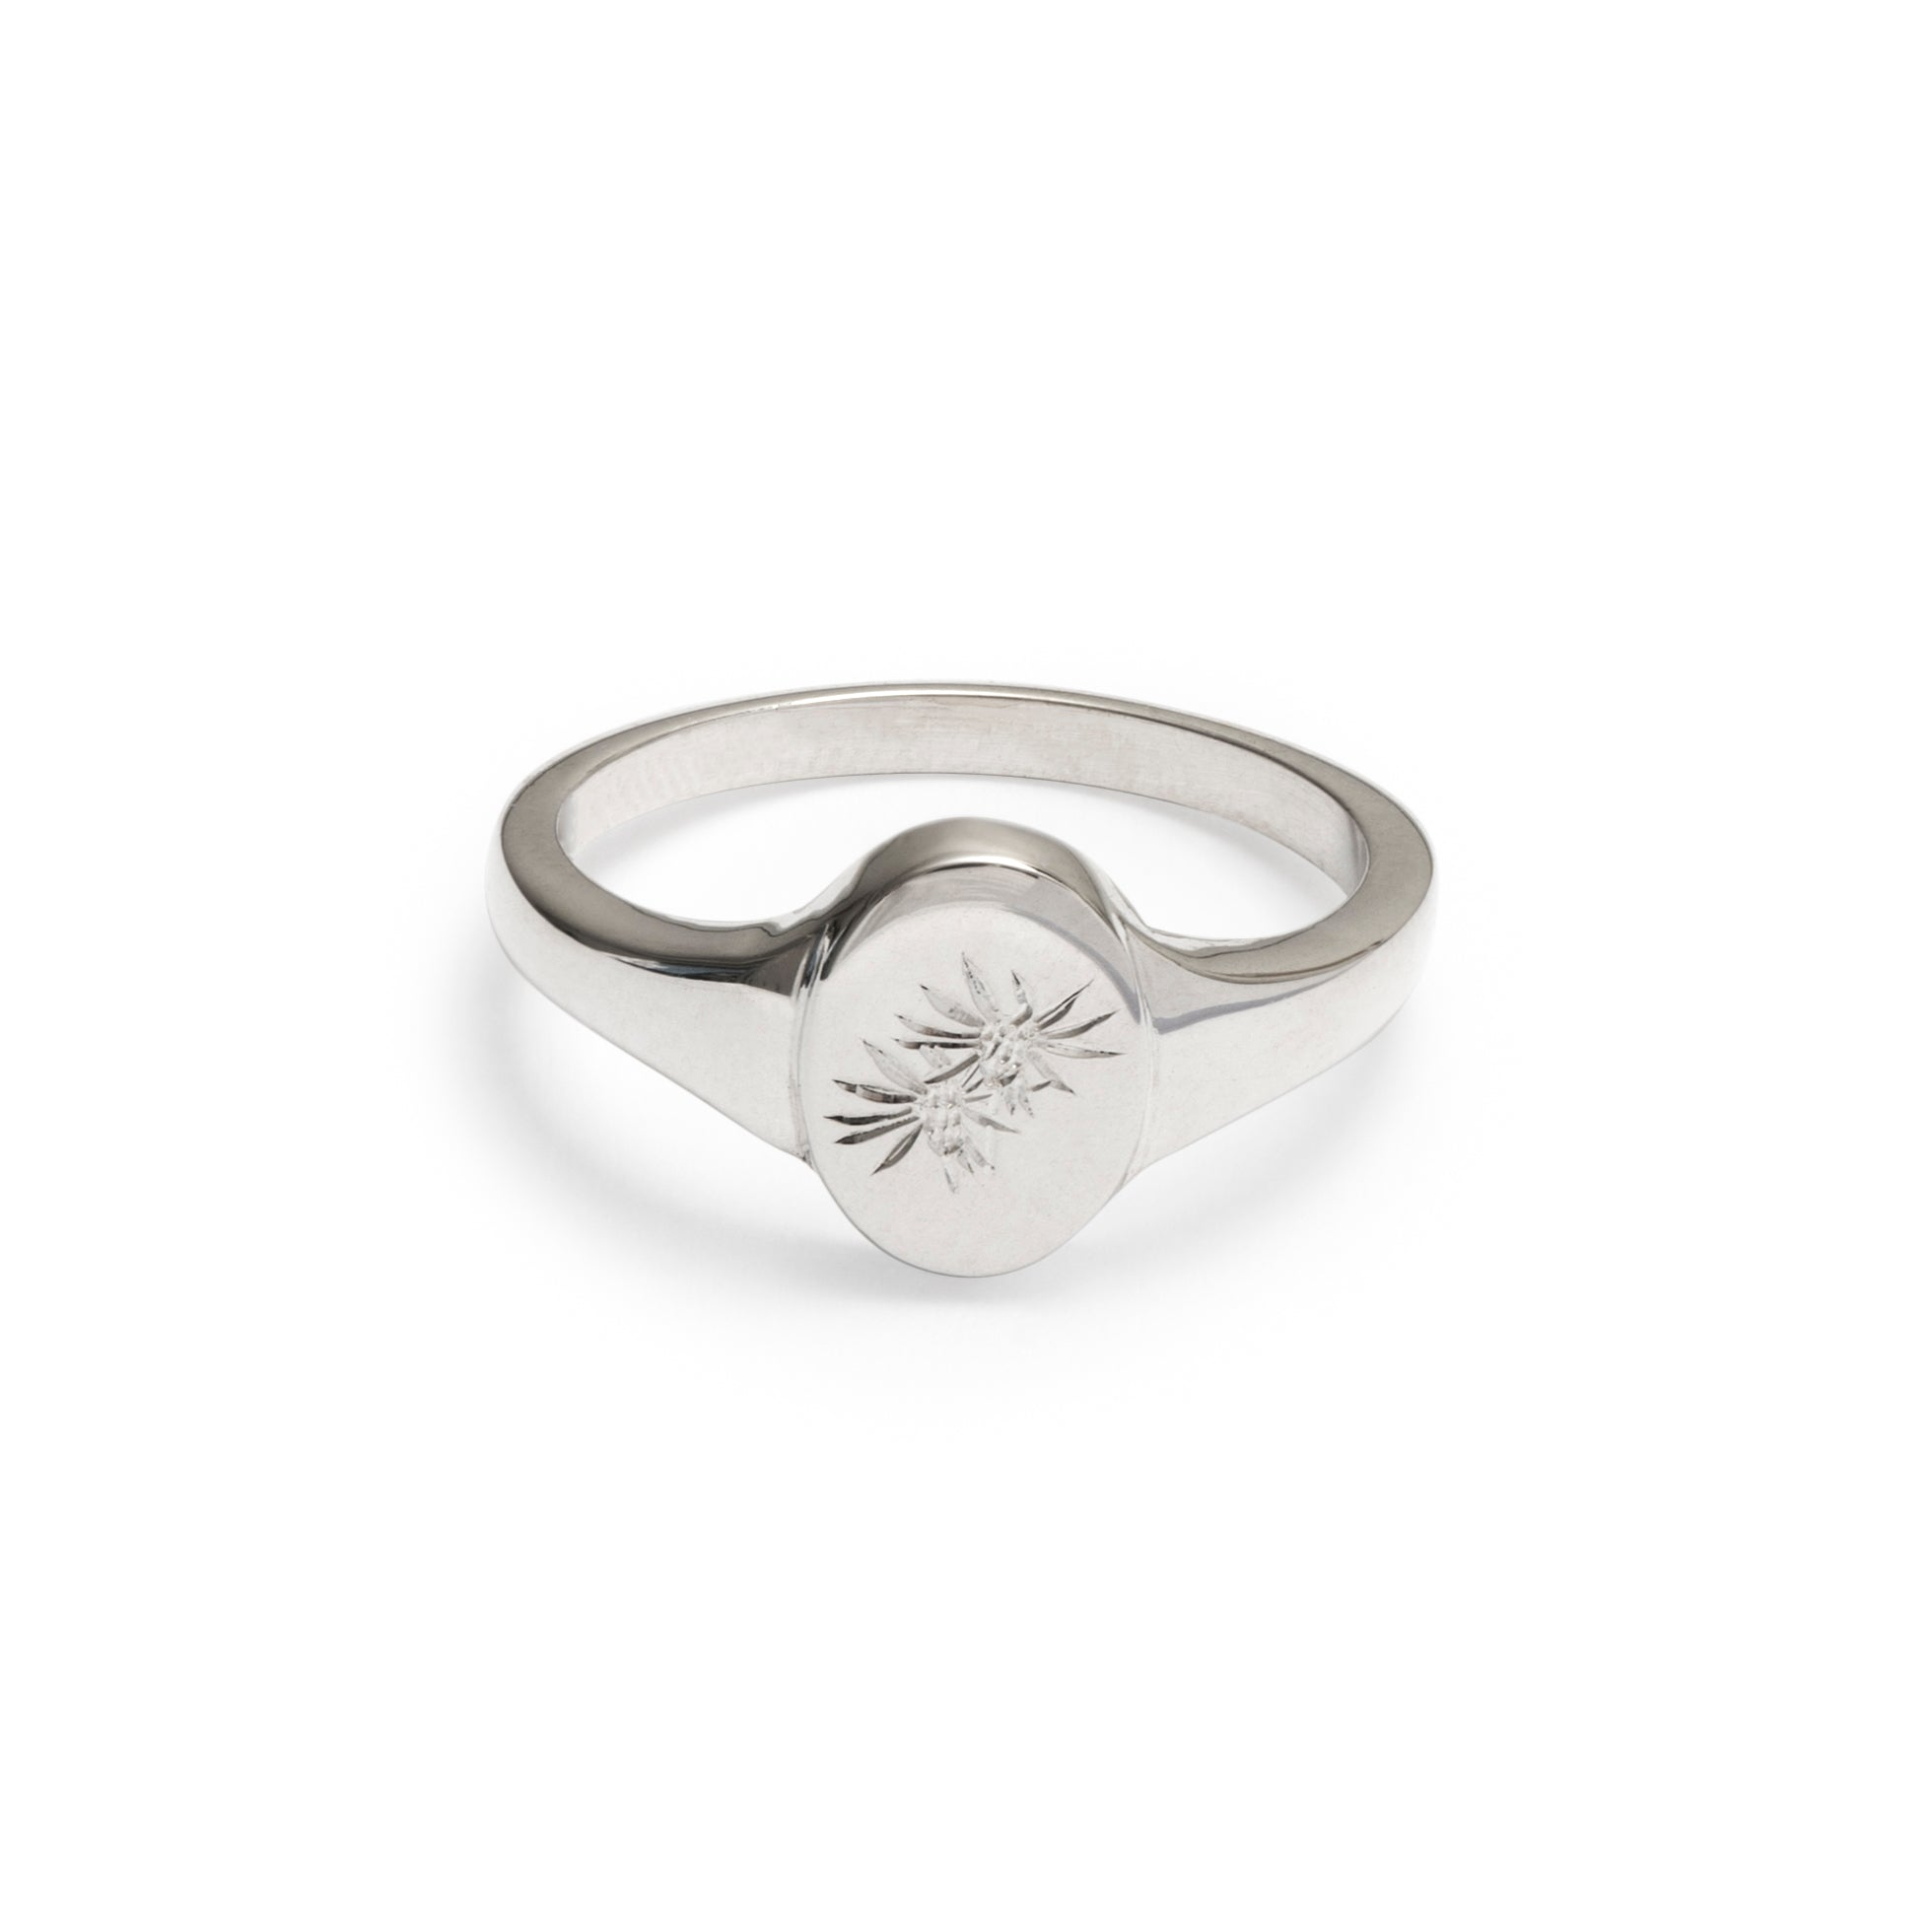 Felicia filifolia Wild Flower Signet Ring Sterling Silver